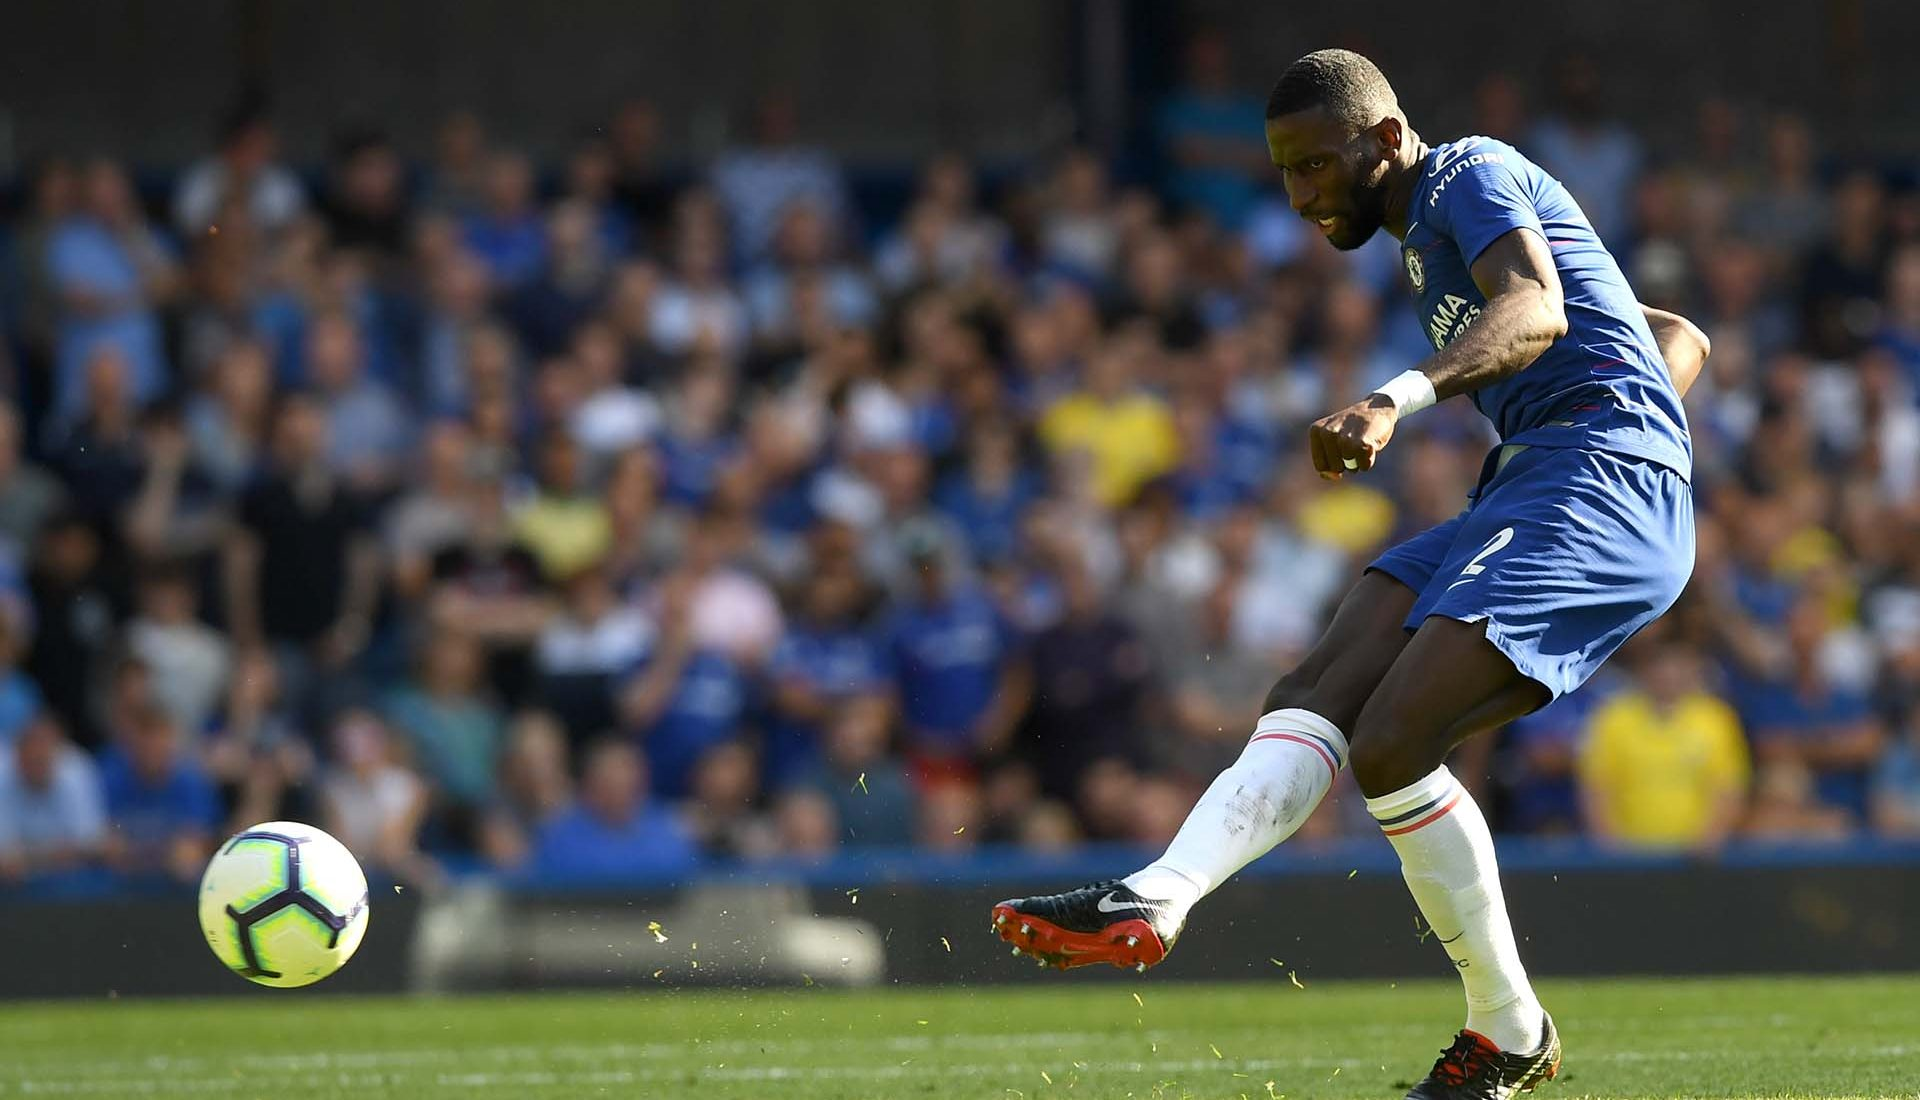 Antonio Rudiger passes the ball during the Premier League match between Chelsea FC and AFC Bournemouth at Stamford Bridge on September 1, 2018 in London.